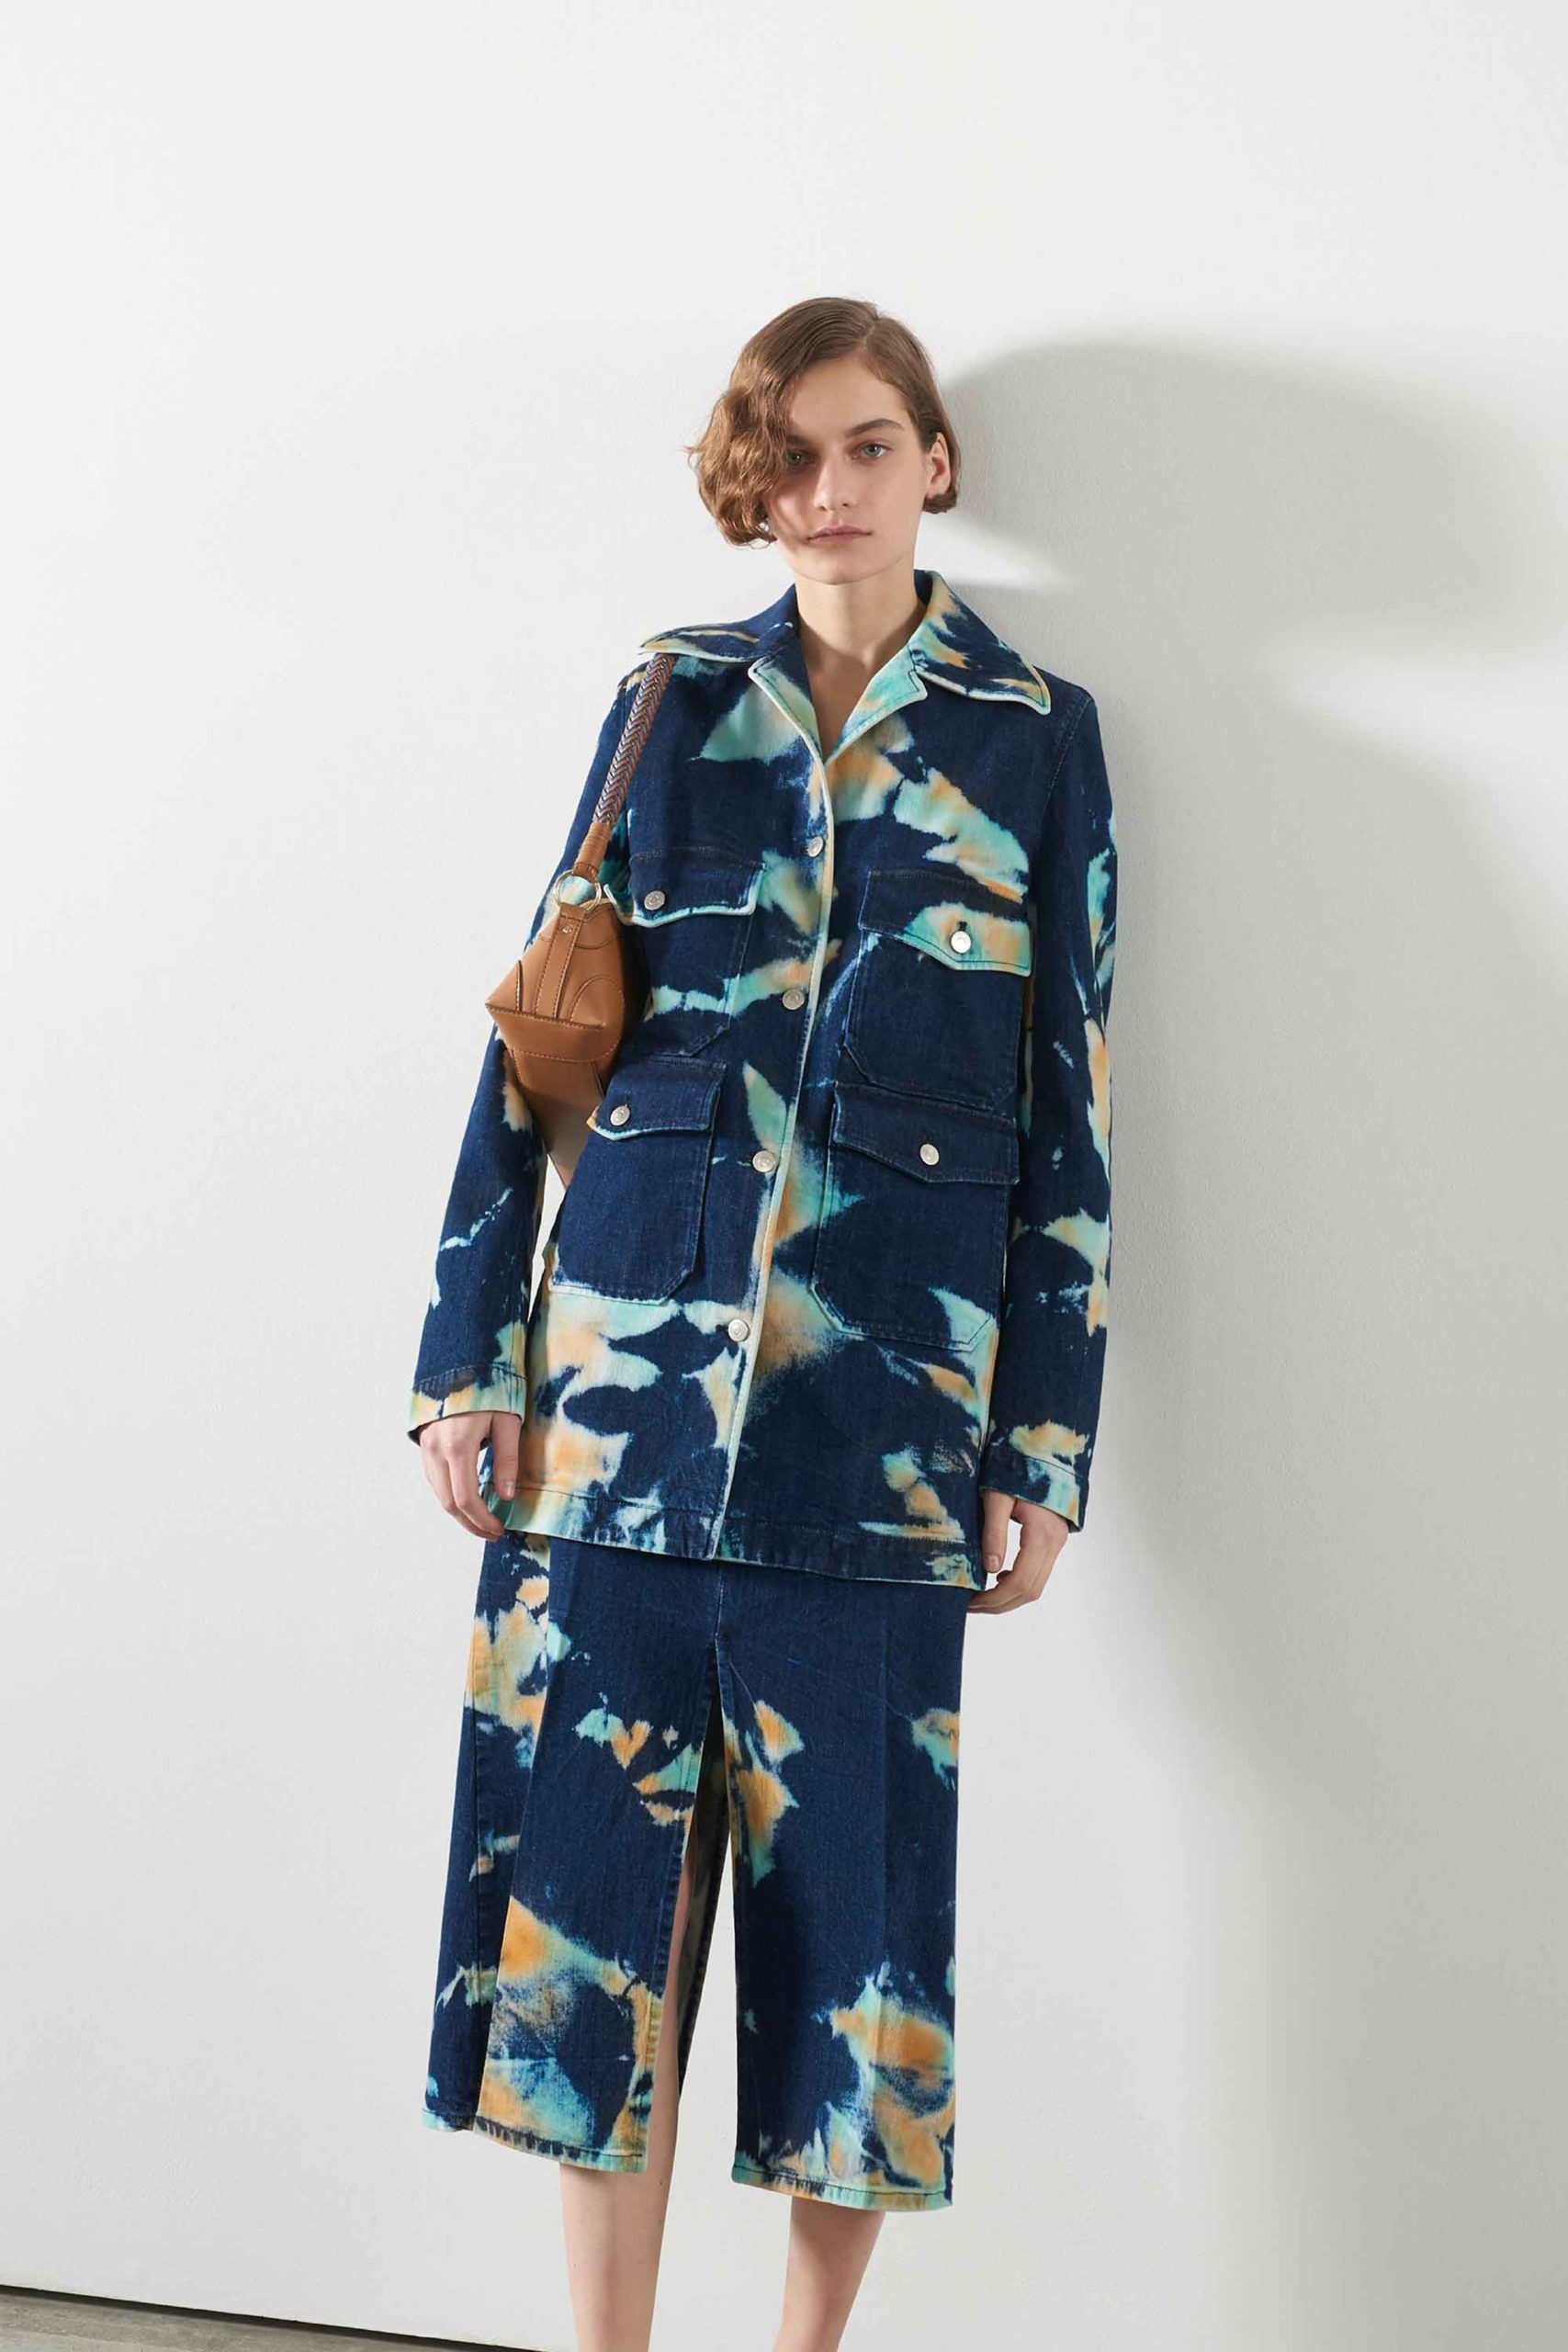 00010-Stella-McCartney-Pre-Fall-2020